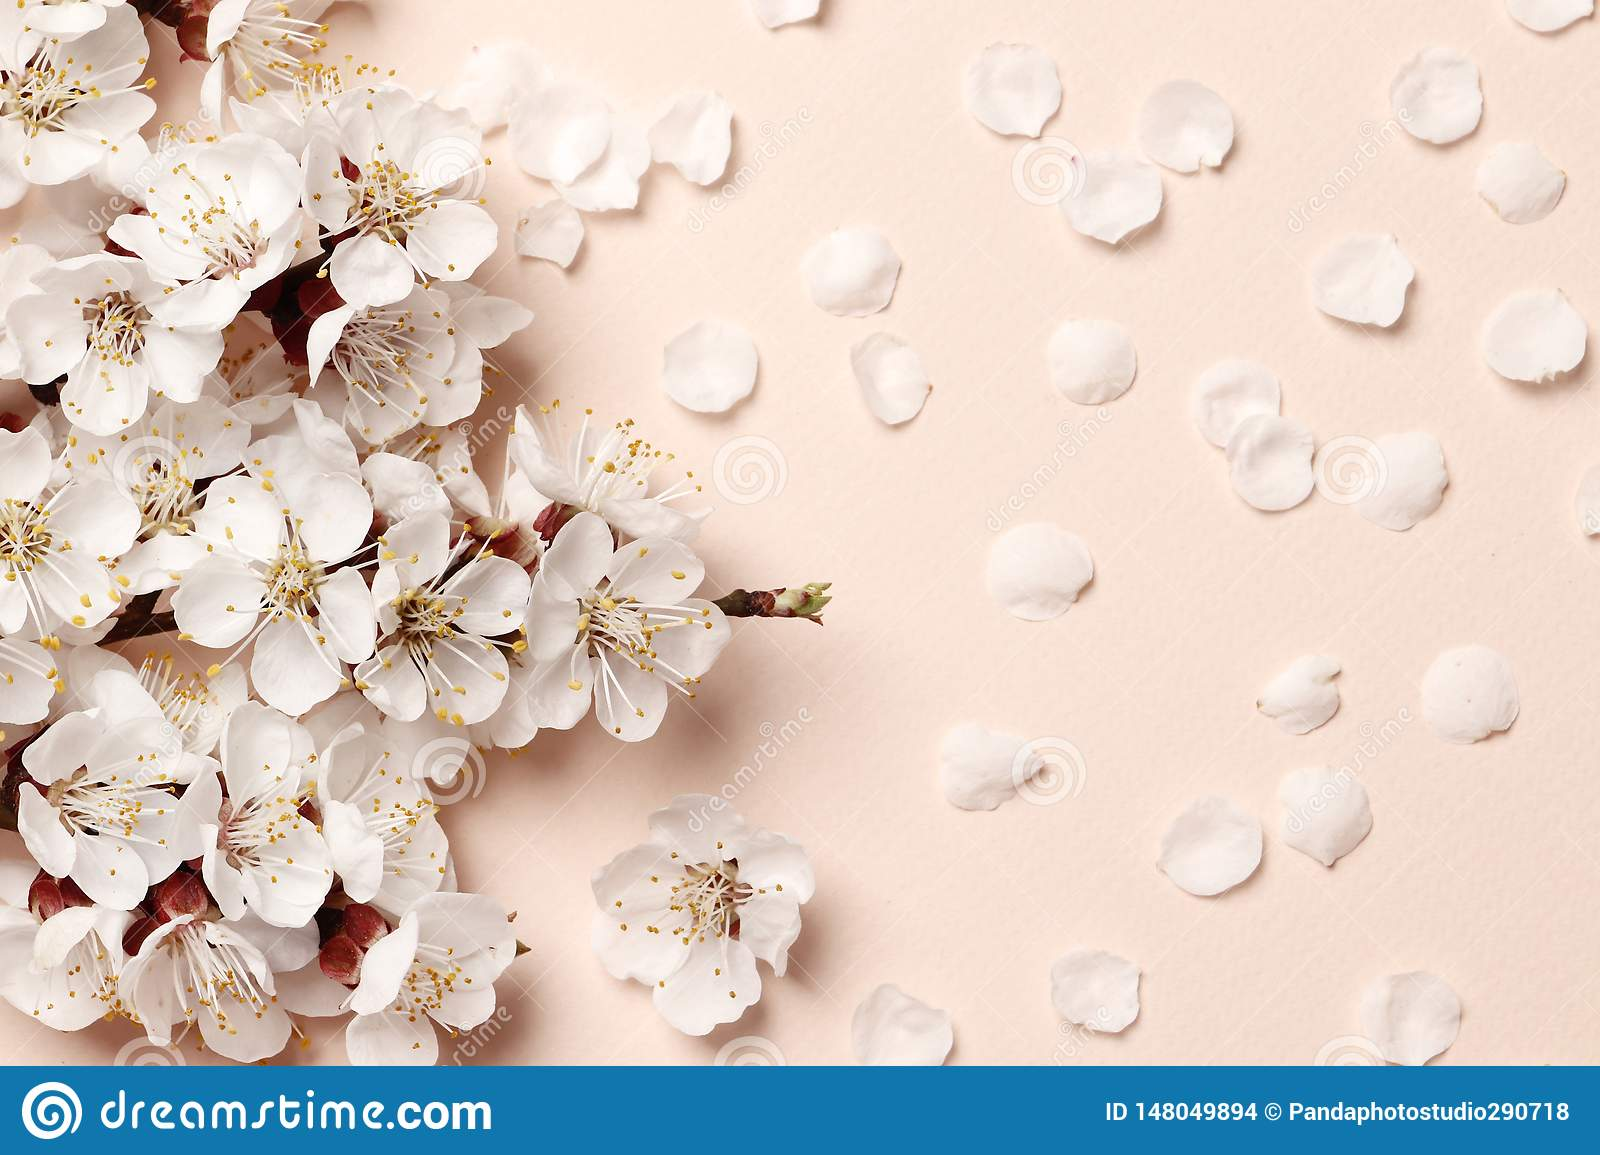 Spring Floral Background Texture And Wallpaper Flat Lay Of White